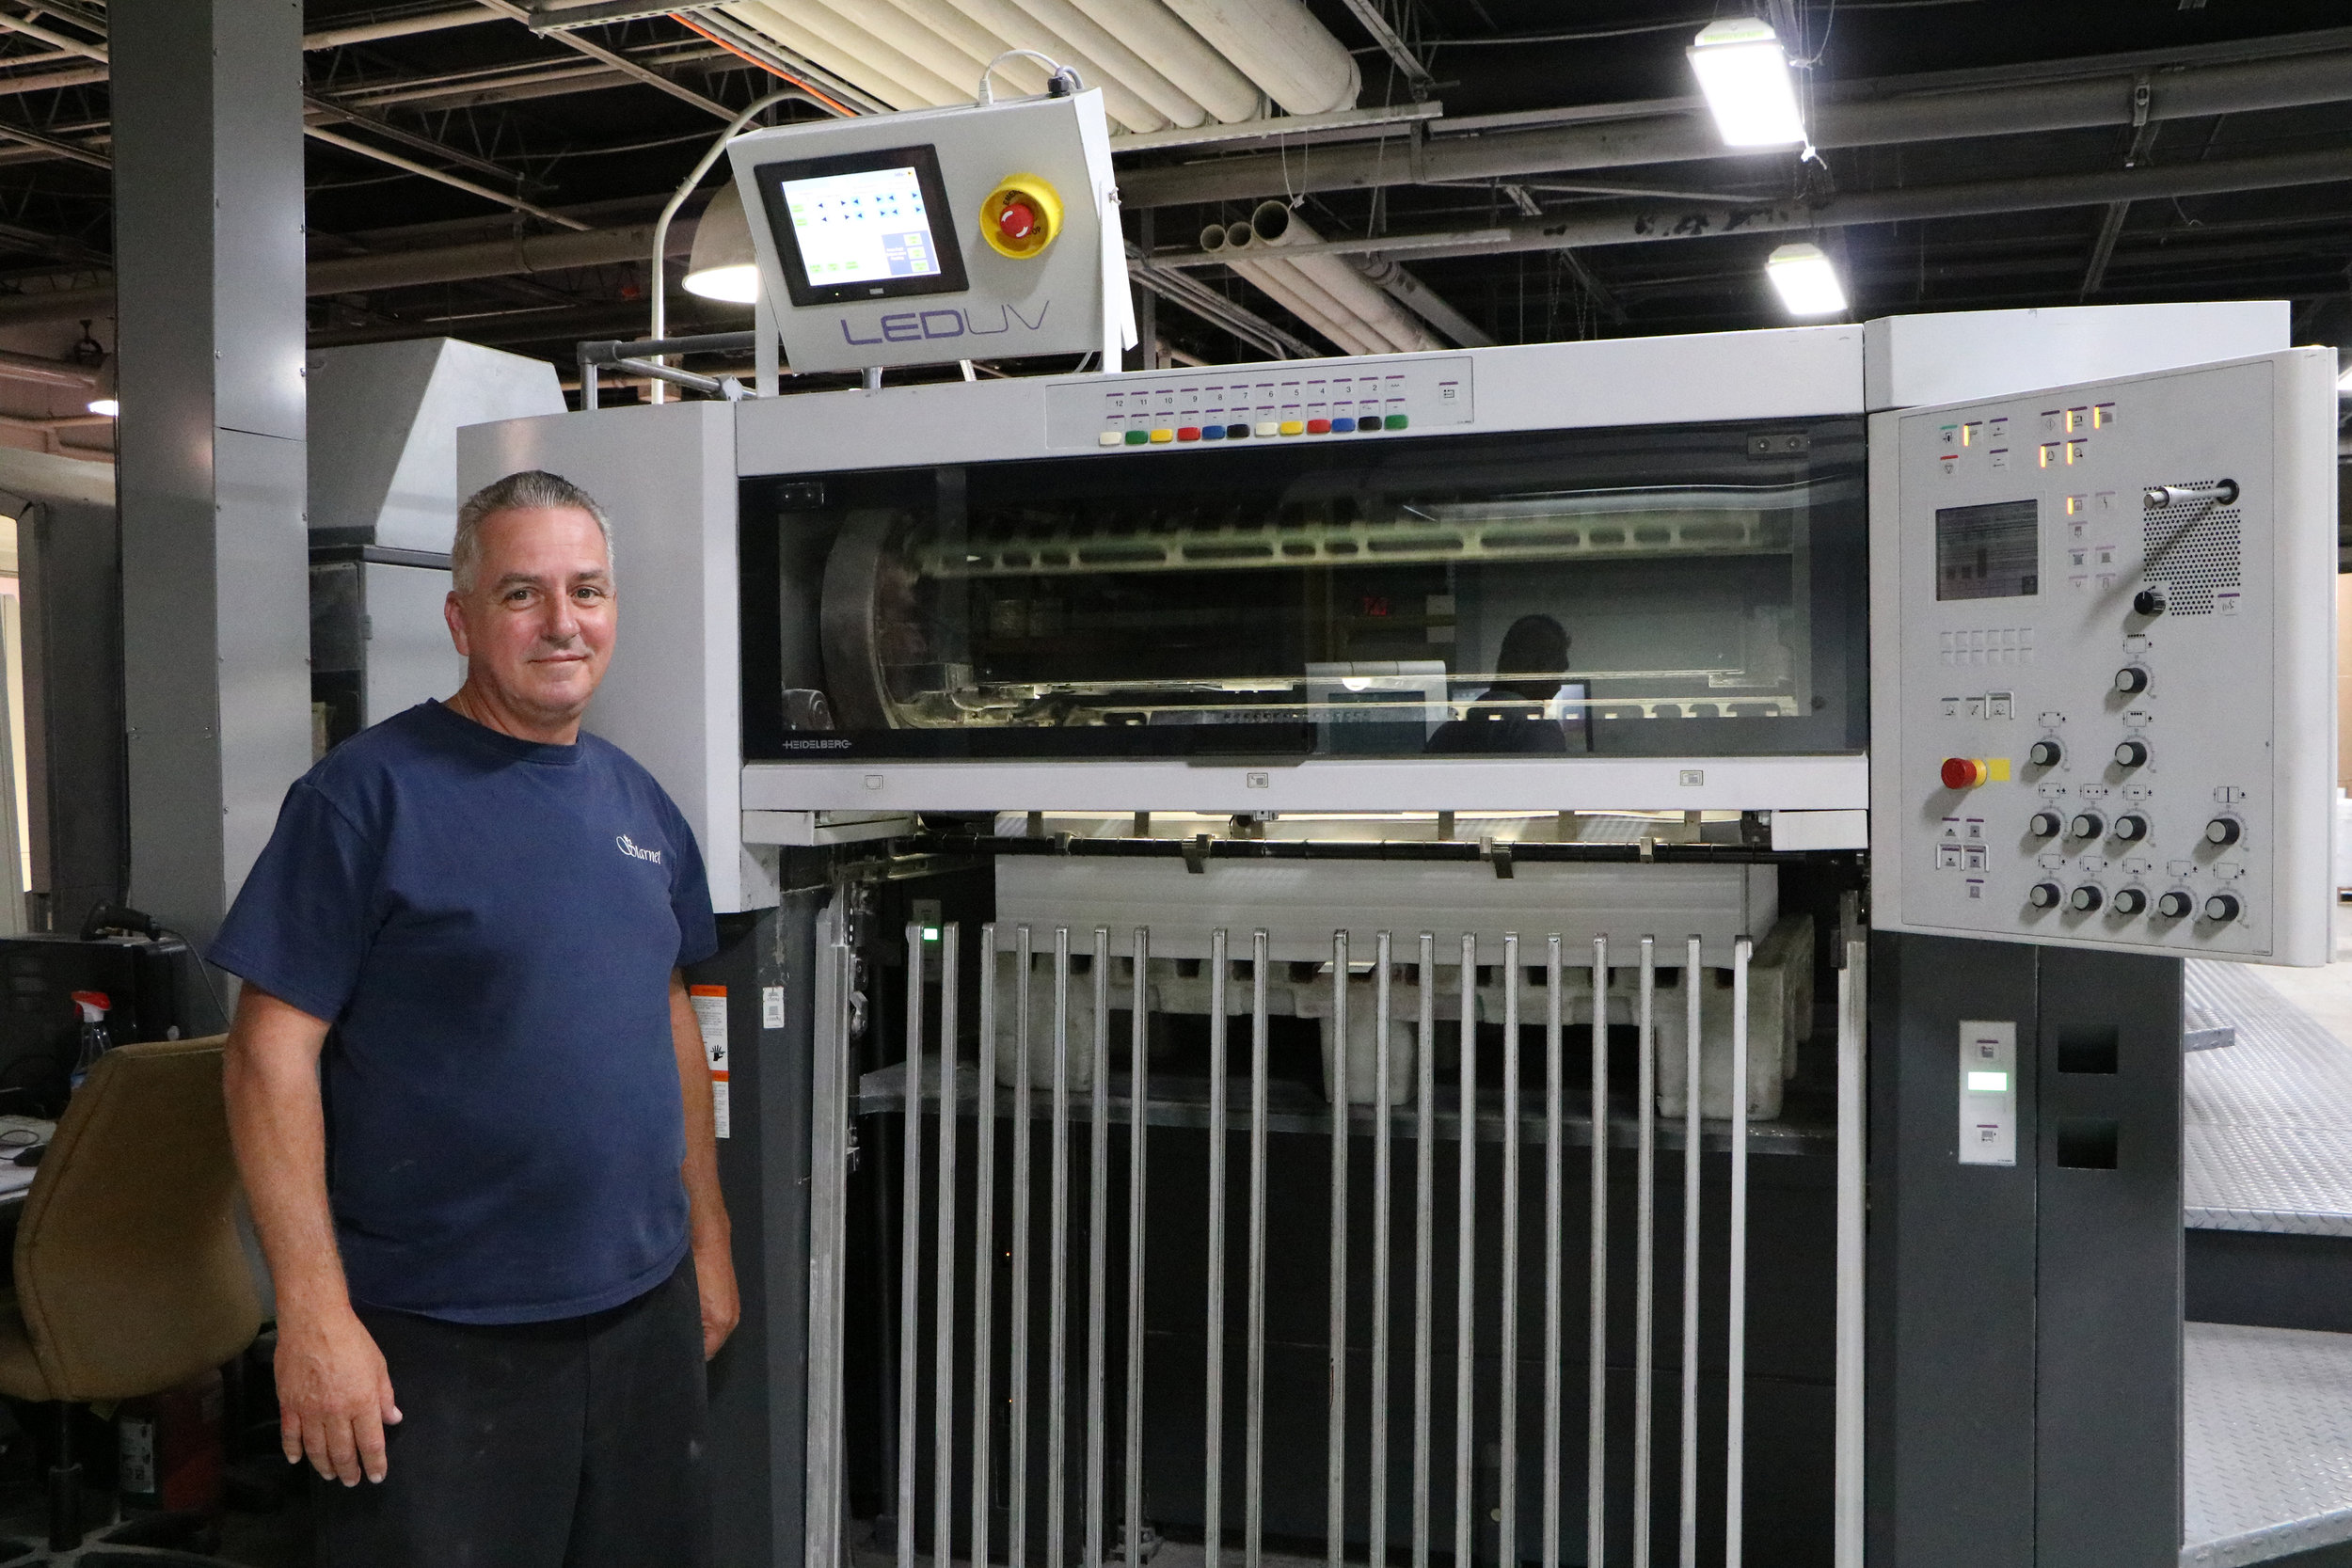 Veteran press operator John Cullen of Starnet Business Solutions pauses for a photo at the end of the company's Heidelberg Speedmaster press, which was retrofitted with an LED UV curing system from Air Motion Systems.